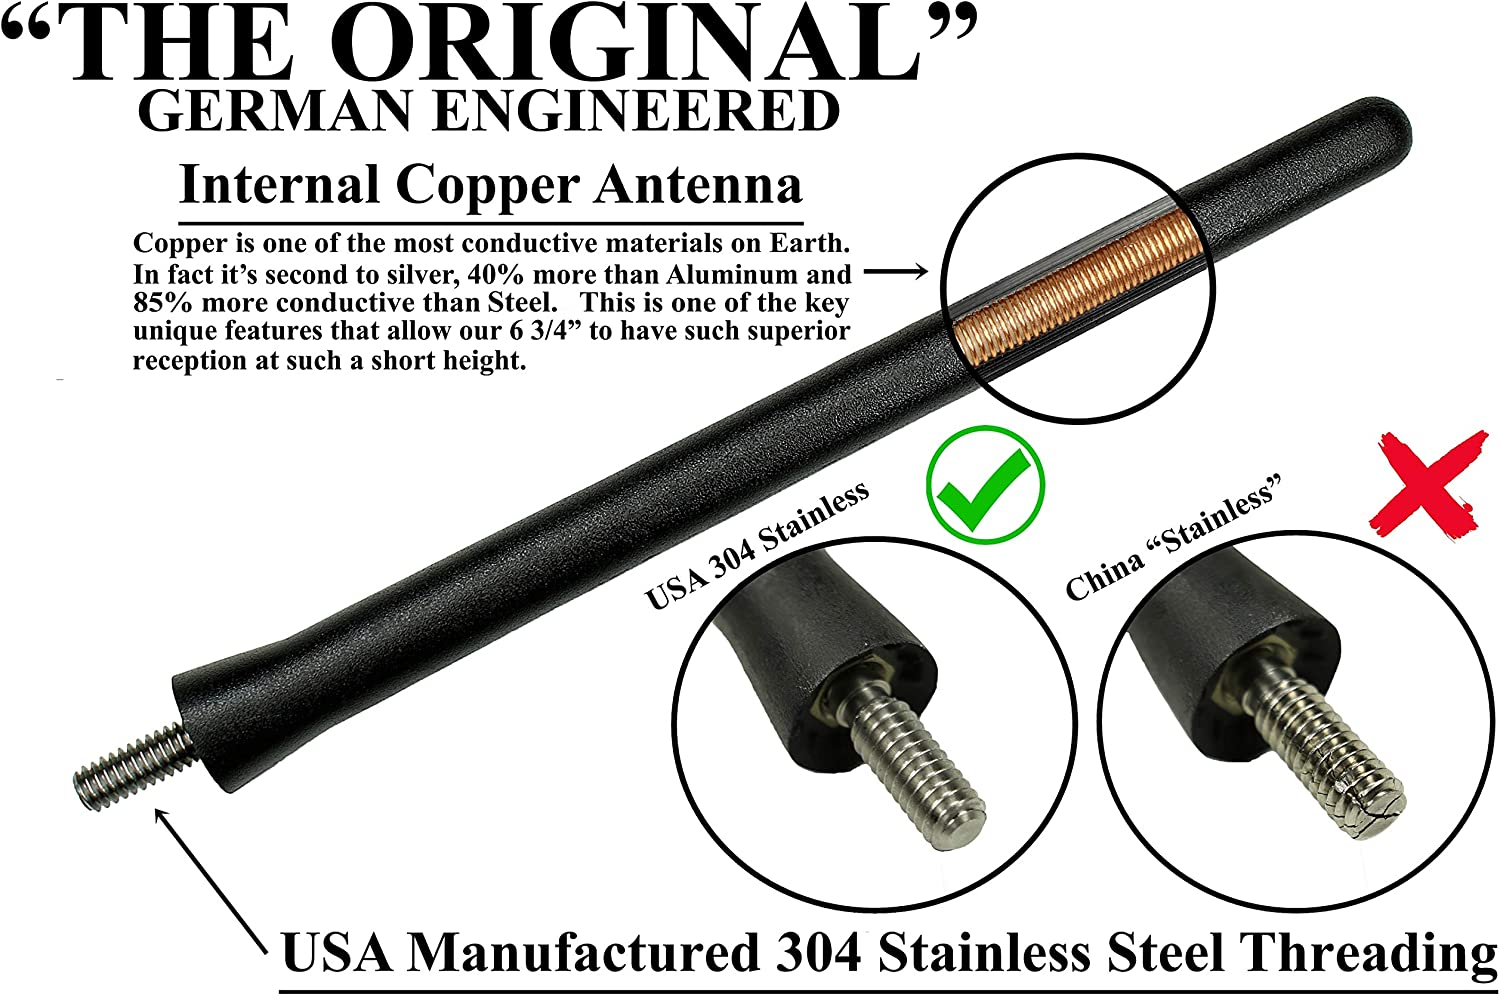 Premium Reception Internal Copper Coil 2014-2019 German Engineered AntennaMastsRus The Original 6 3//4 Inch is Compatible with Indian Chieftain - Short Rubber Antenna